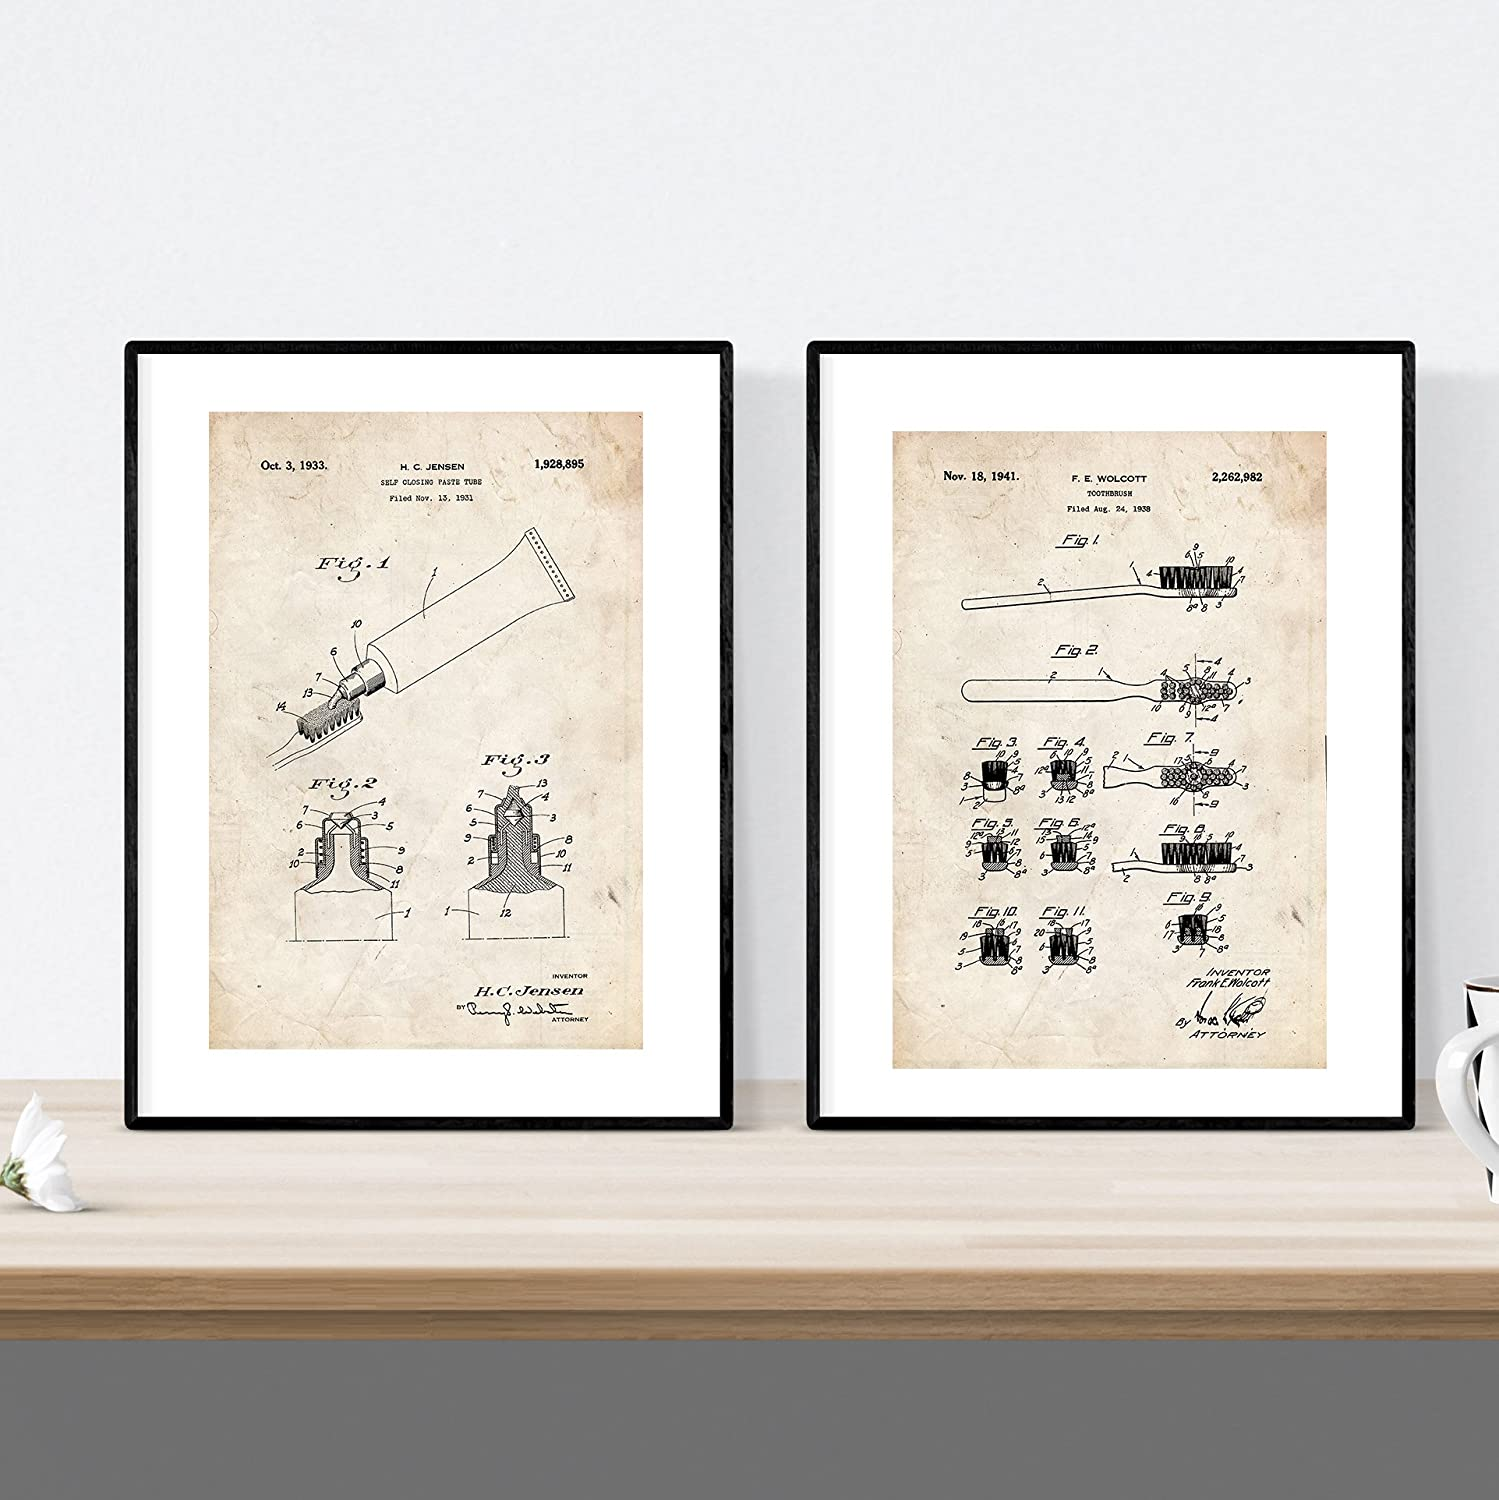 Nacnic Prints Vintage Patents Toothbrush & Toothpaste - Set of 1 - Unframed 8x11 inch Size - 250g Paper - Beautiful Poster Painting for Home Office Living Room